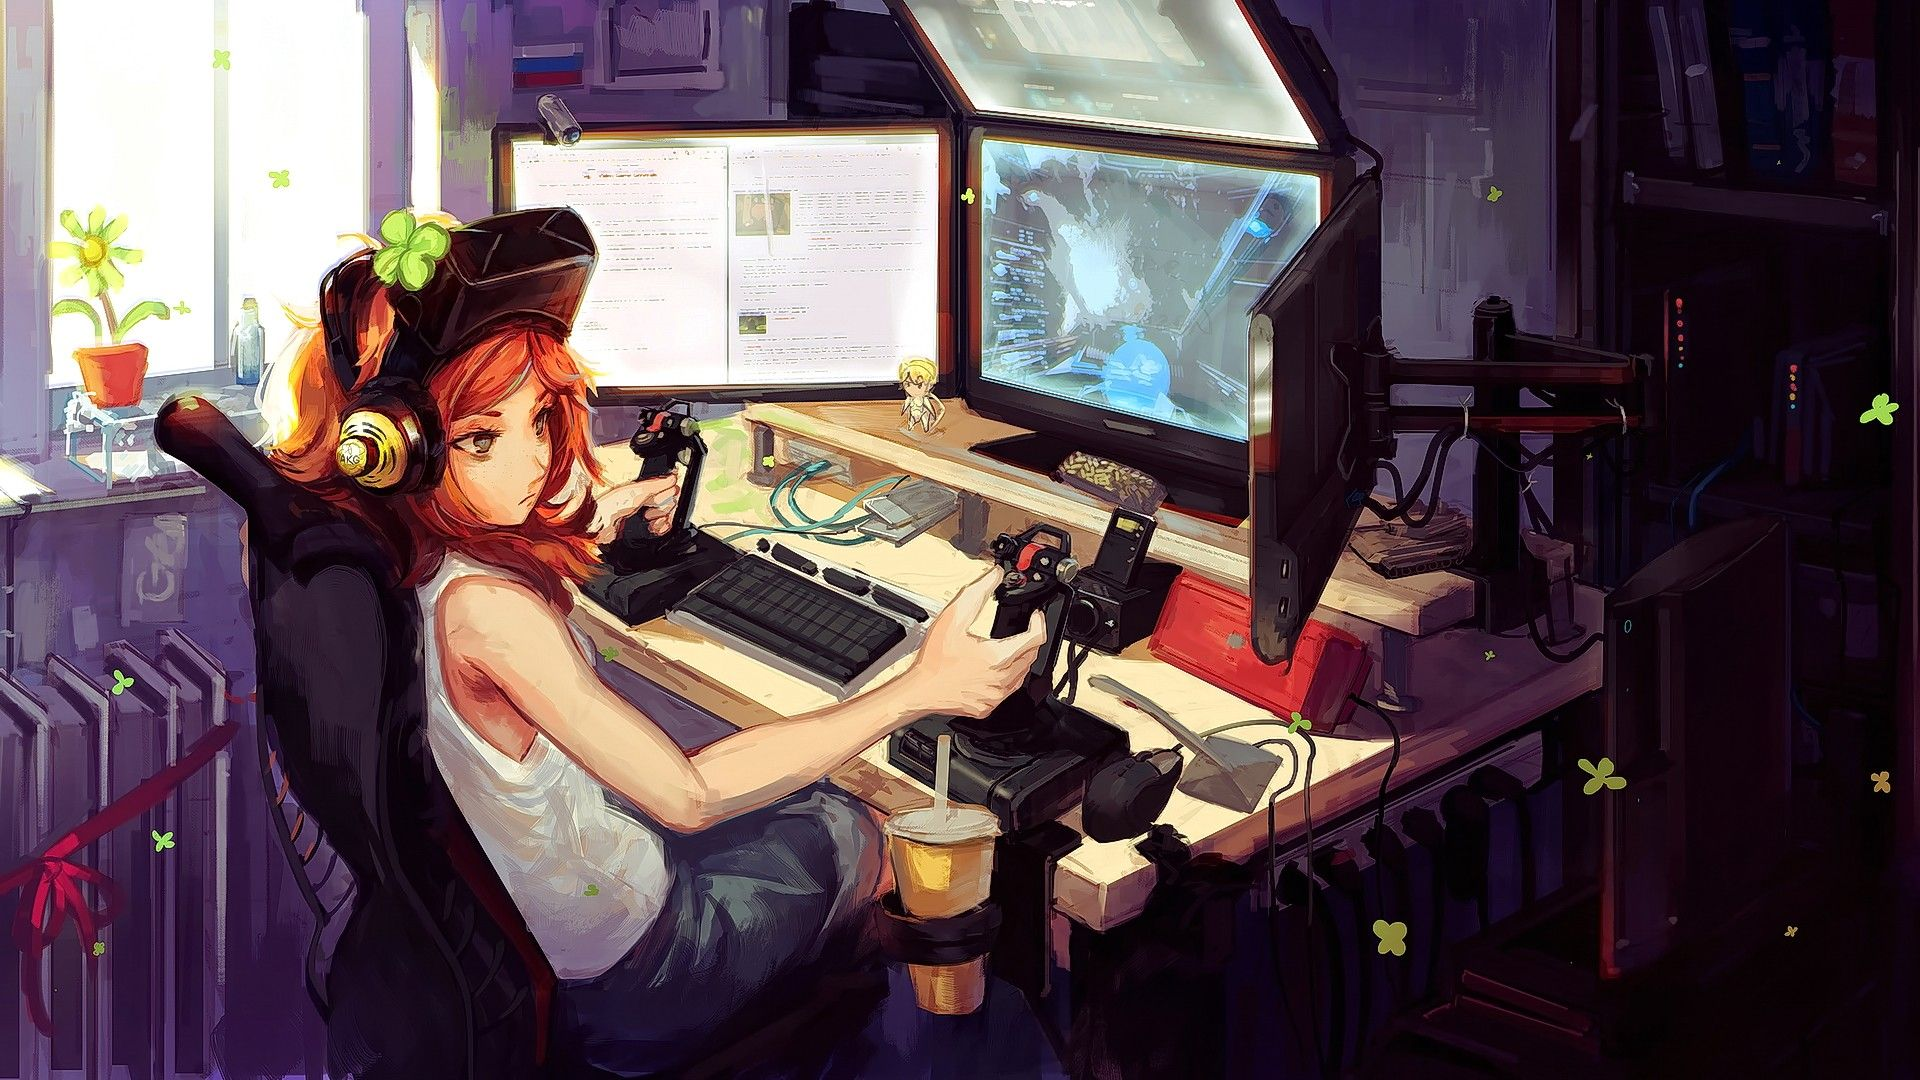 Anime 1920x1080 Digital Art Computer Headsets Vivian James Interfaces Anime Anime Girls Original Characters Room Redhead Video Star Citizen Gamers Anime Anime